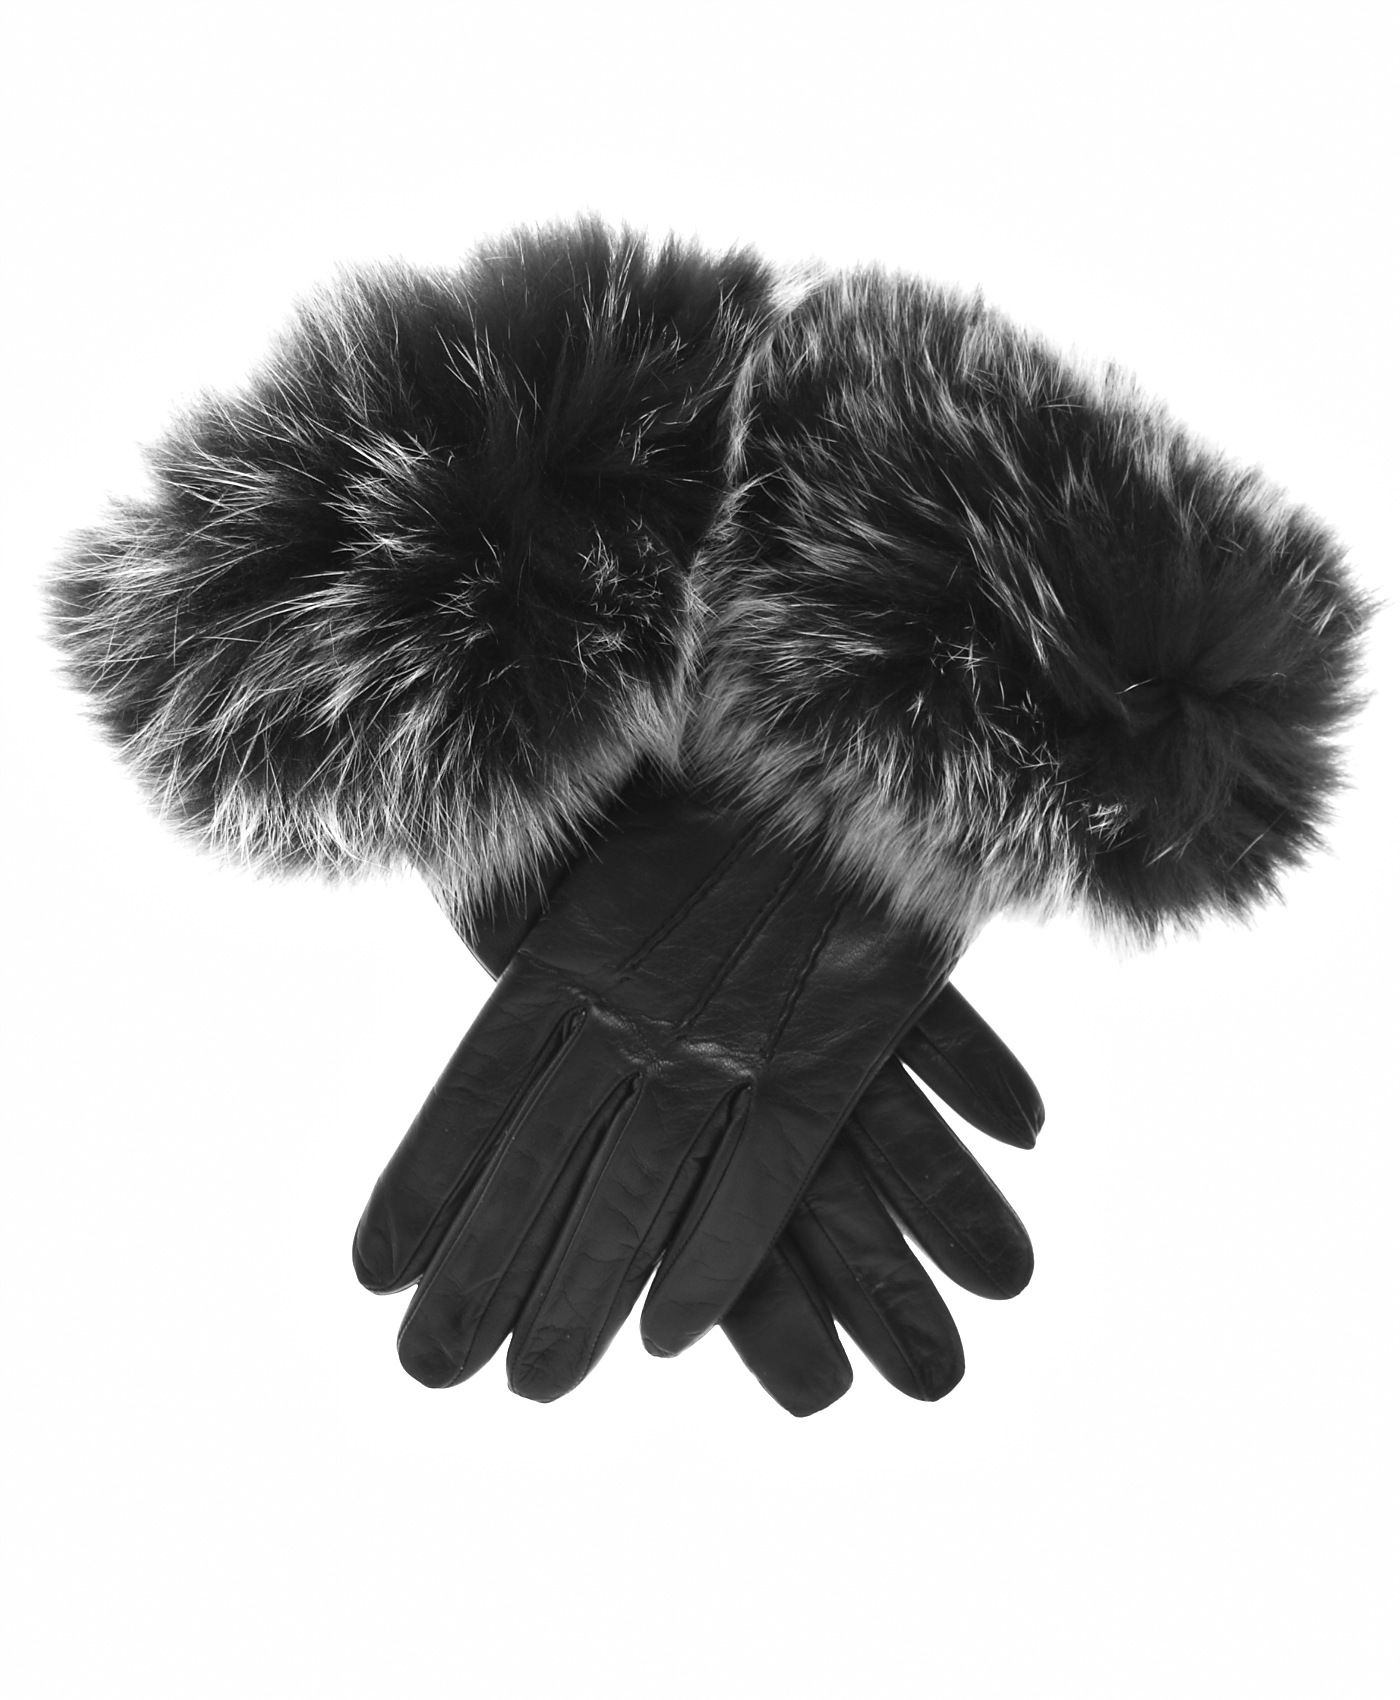 Black leather gloves with fur trim women s italian fox fur cuff cashmere lined leather